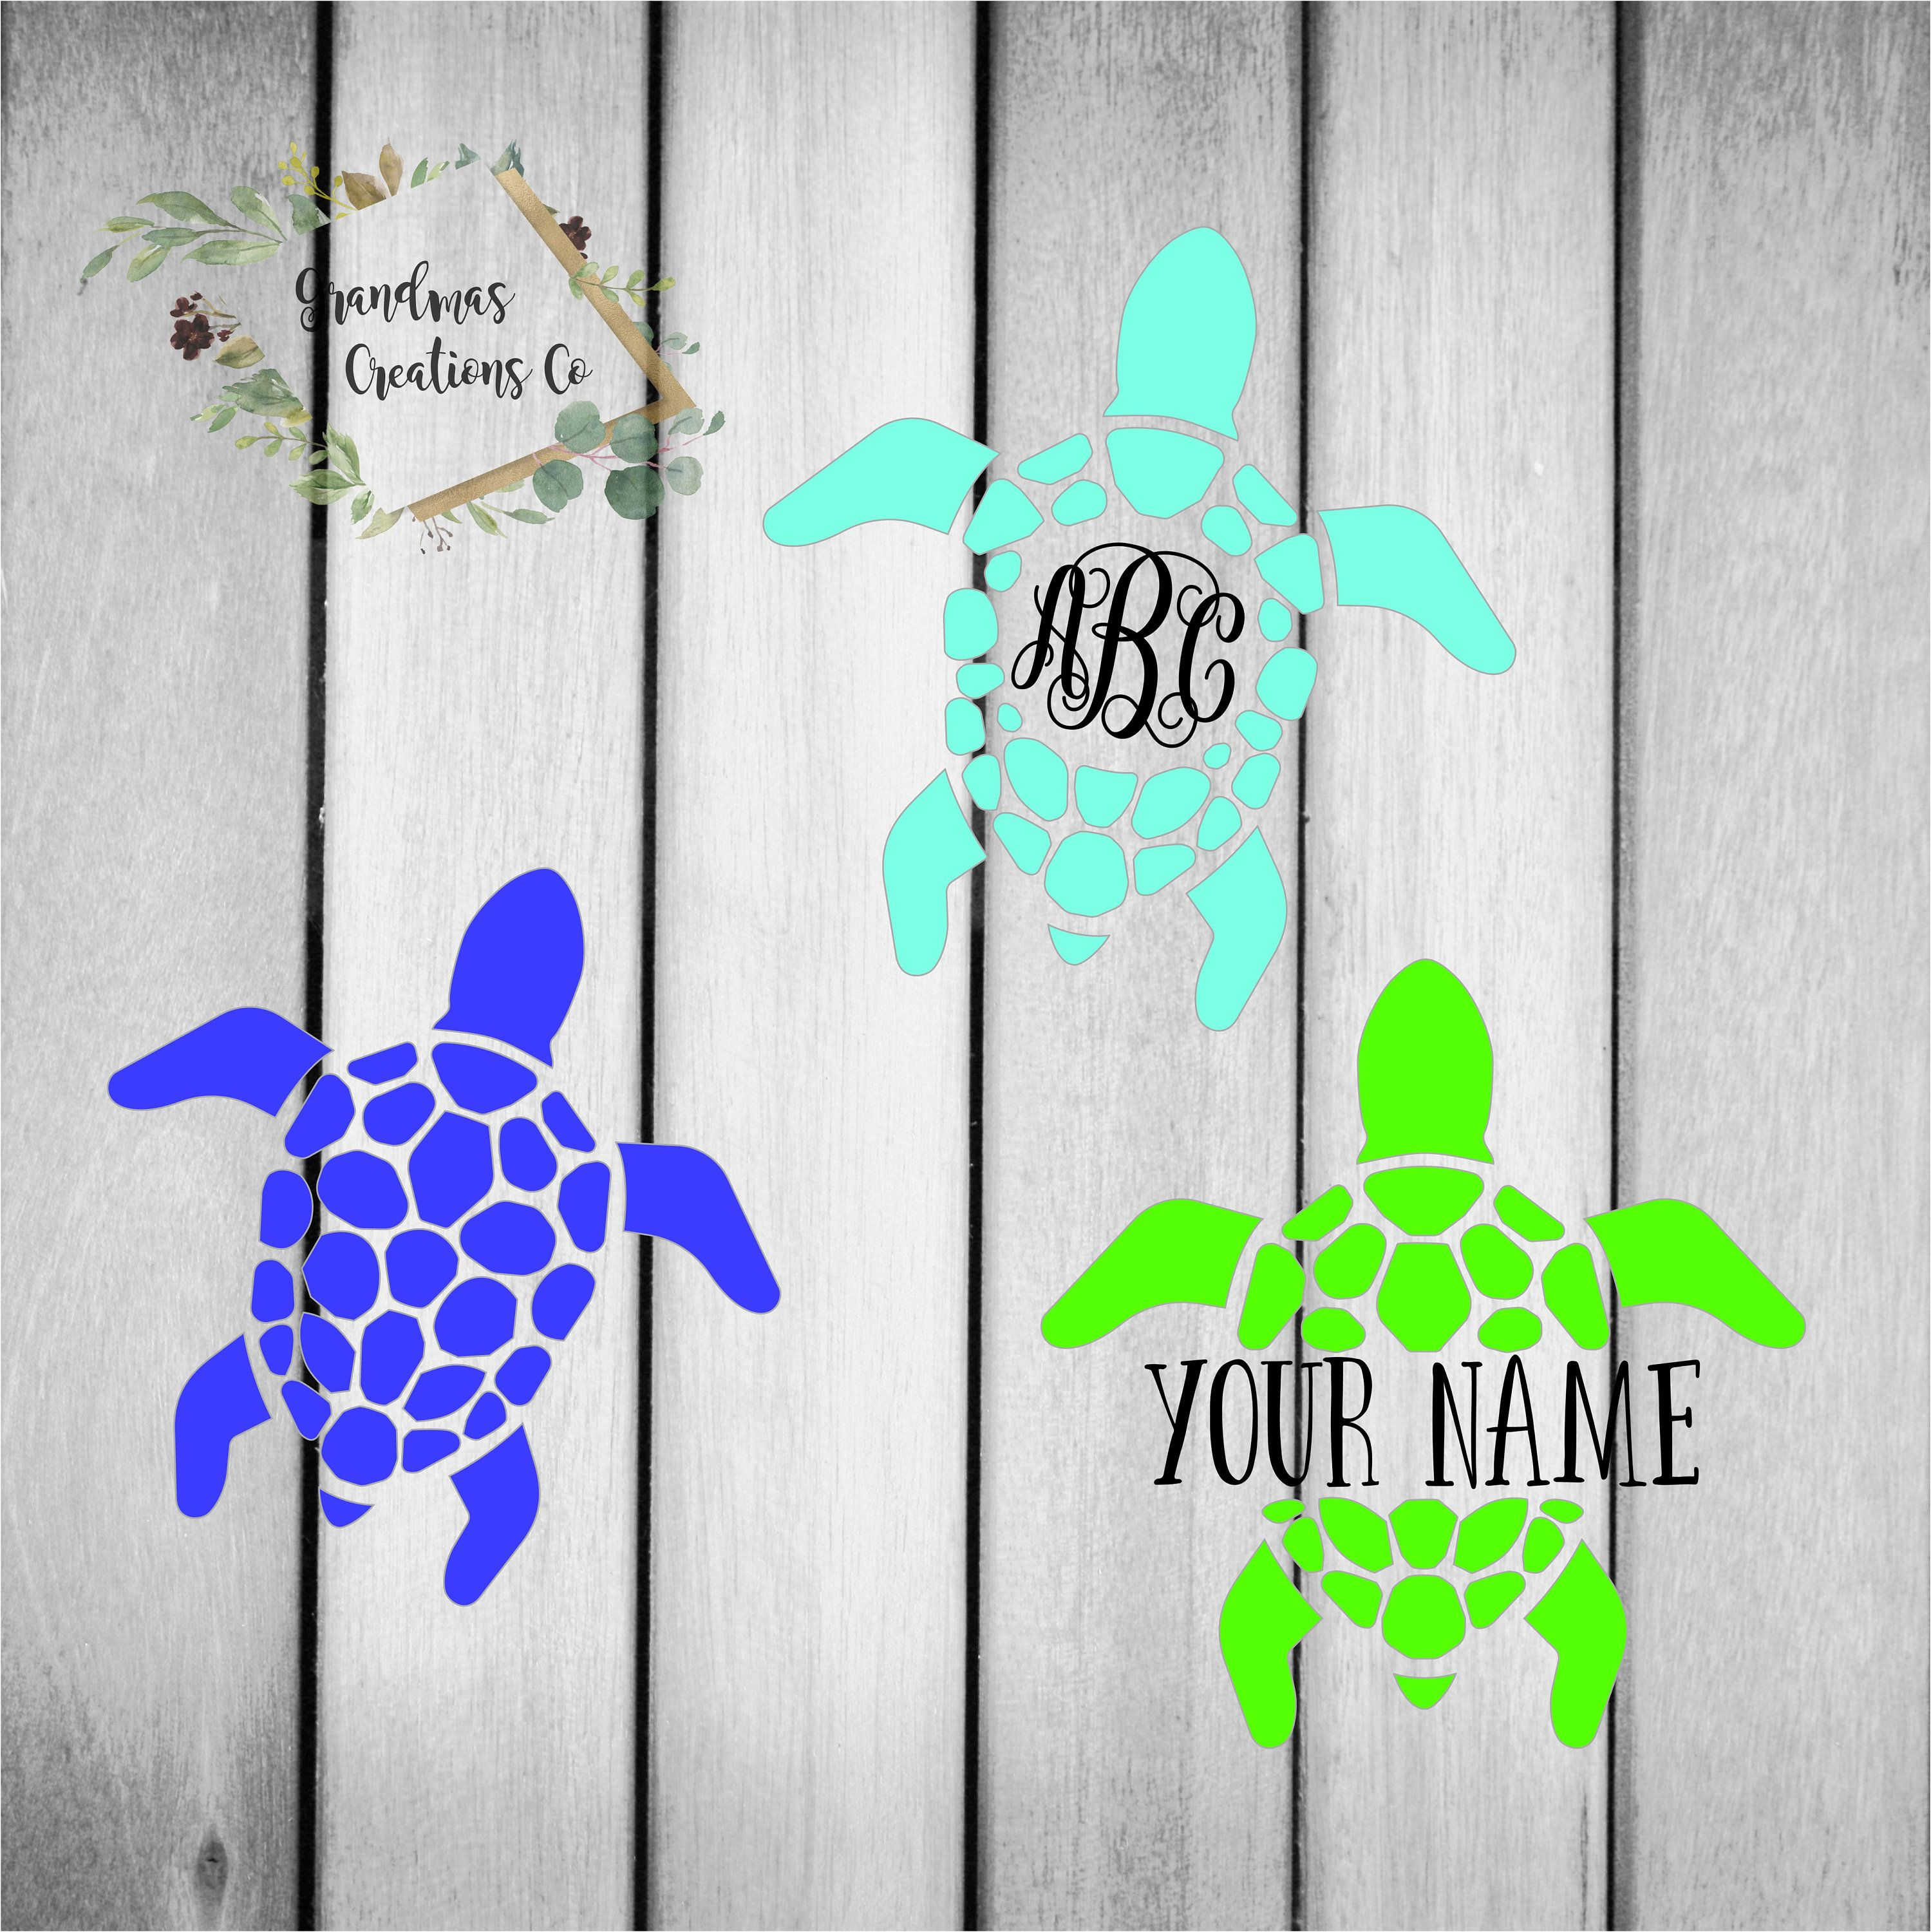 Sea Turtle Monogram Car Decal Turtle Gifts Yeti Decal For Etsy Car Monogram Decal Turtle Car Car Decals [ 3000 x 2999 Pixel ]